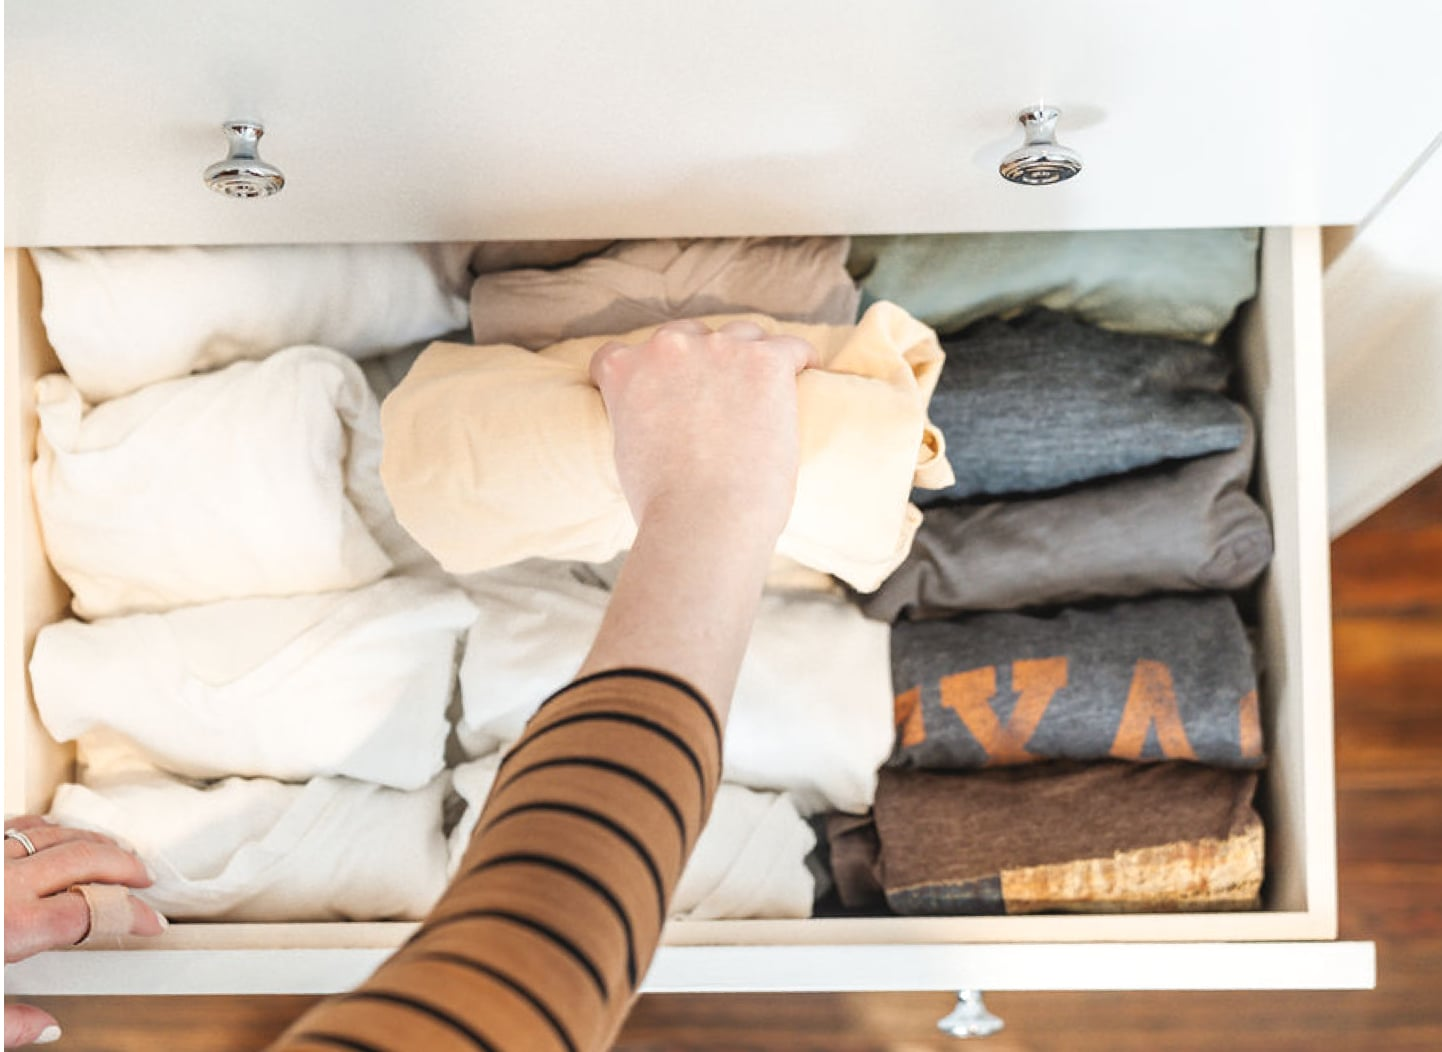 Drawer open with neatly folded clothes inside